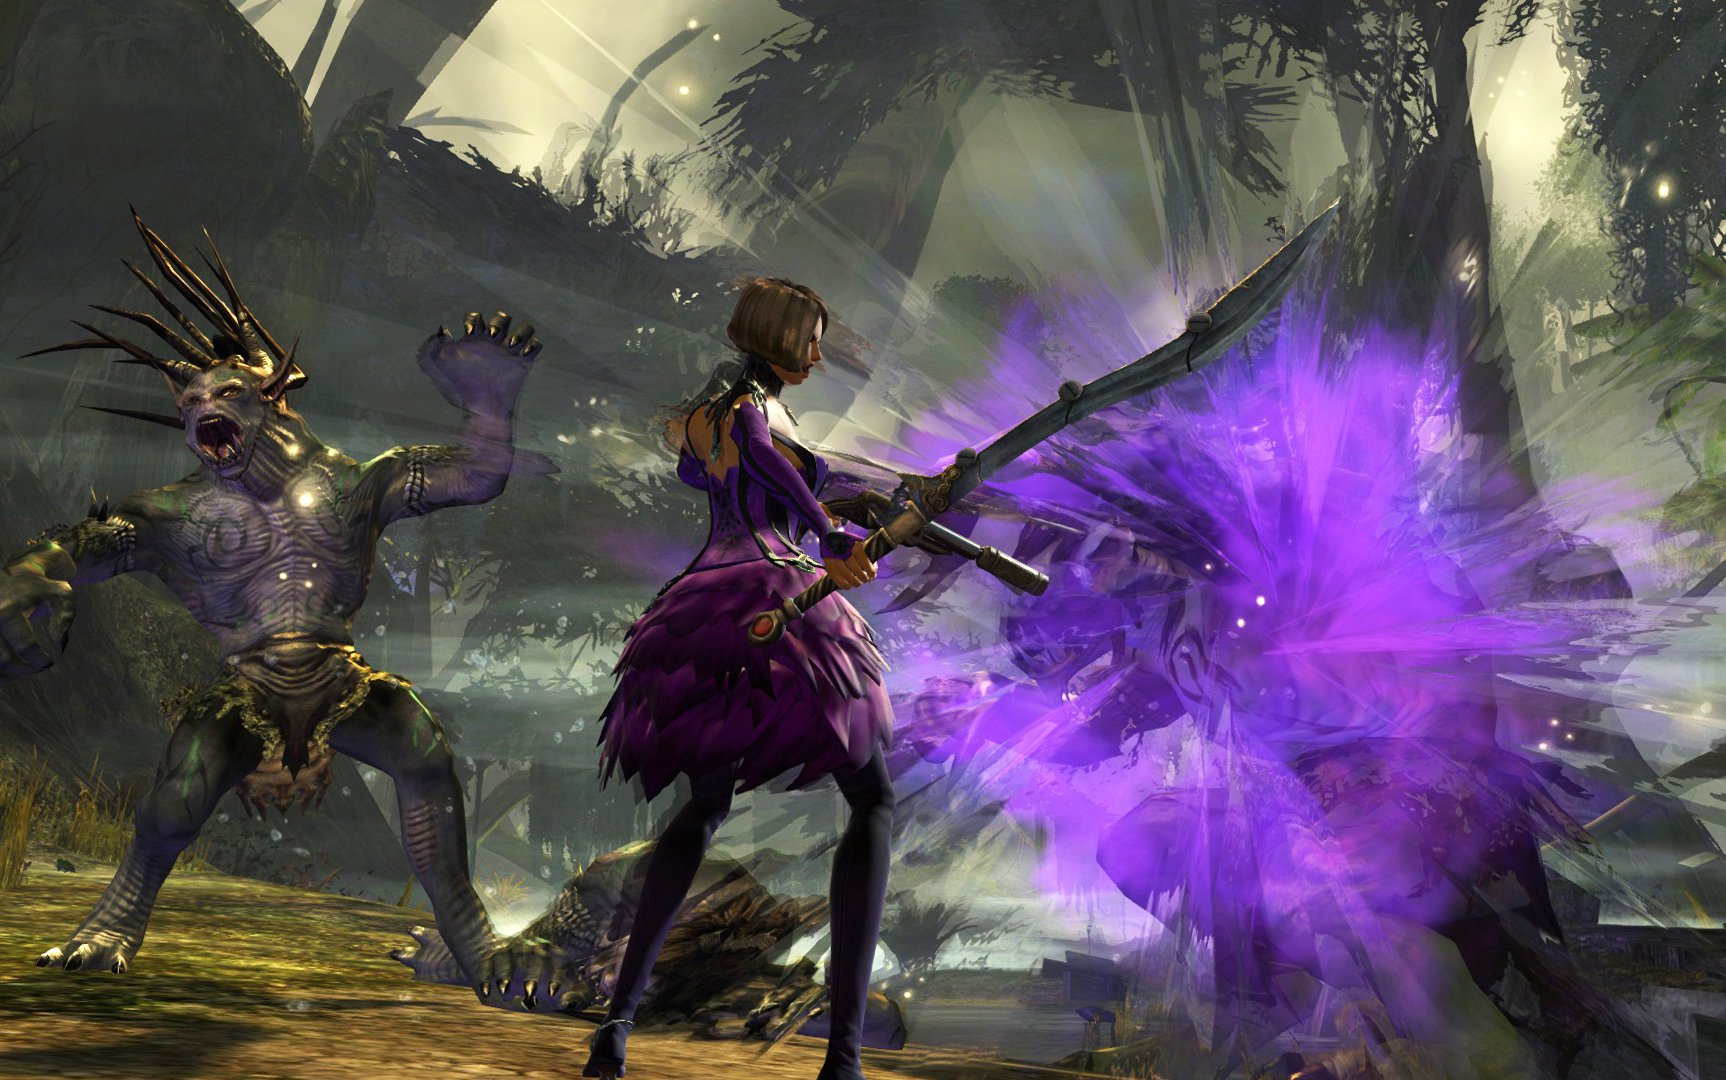 Guild wars 2 mesmer pvp and pve guide tips and strategy.